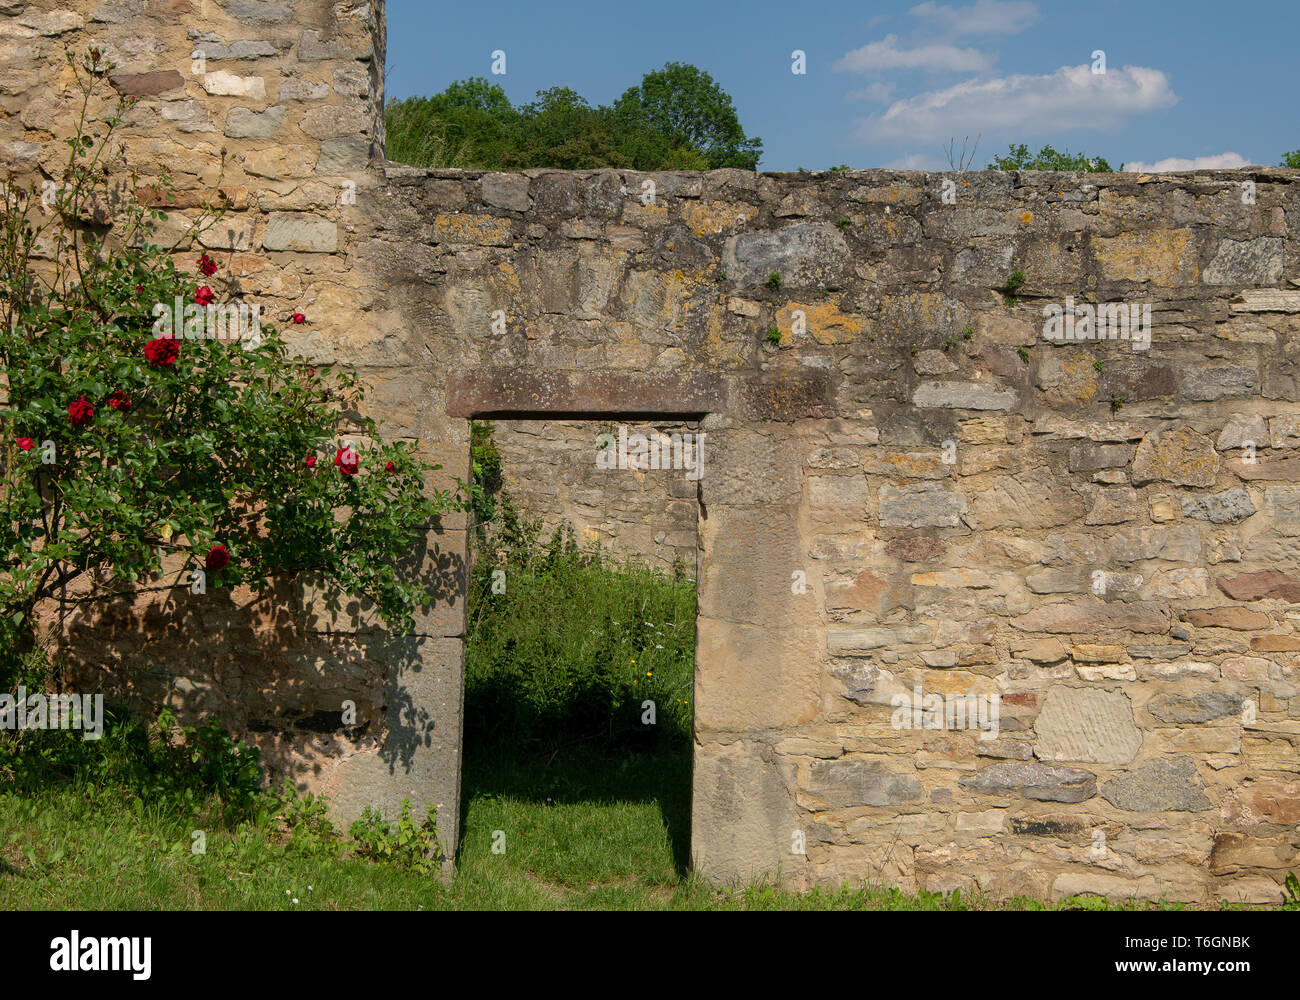 Red Bricked Stock Photos & Red Bricked Stock Images - Alamy